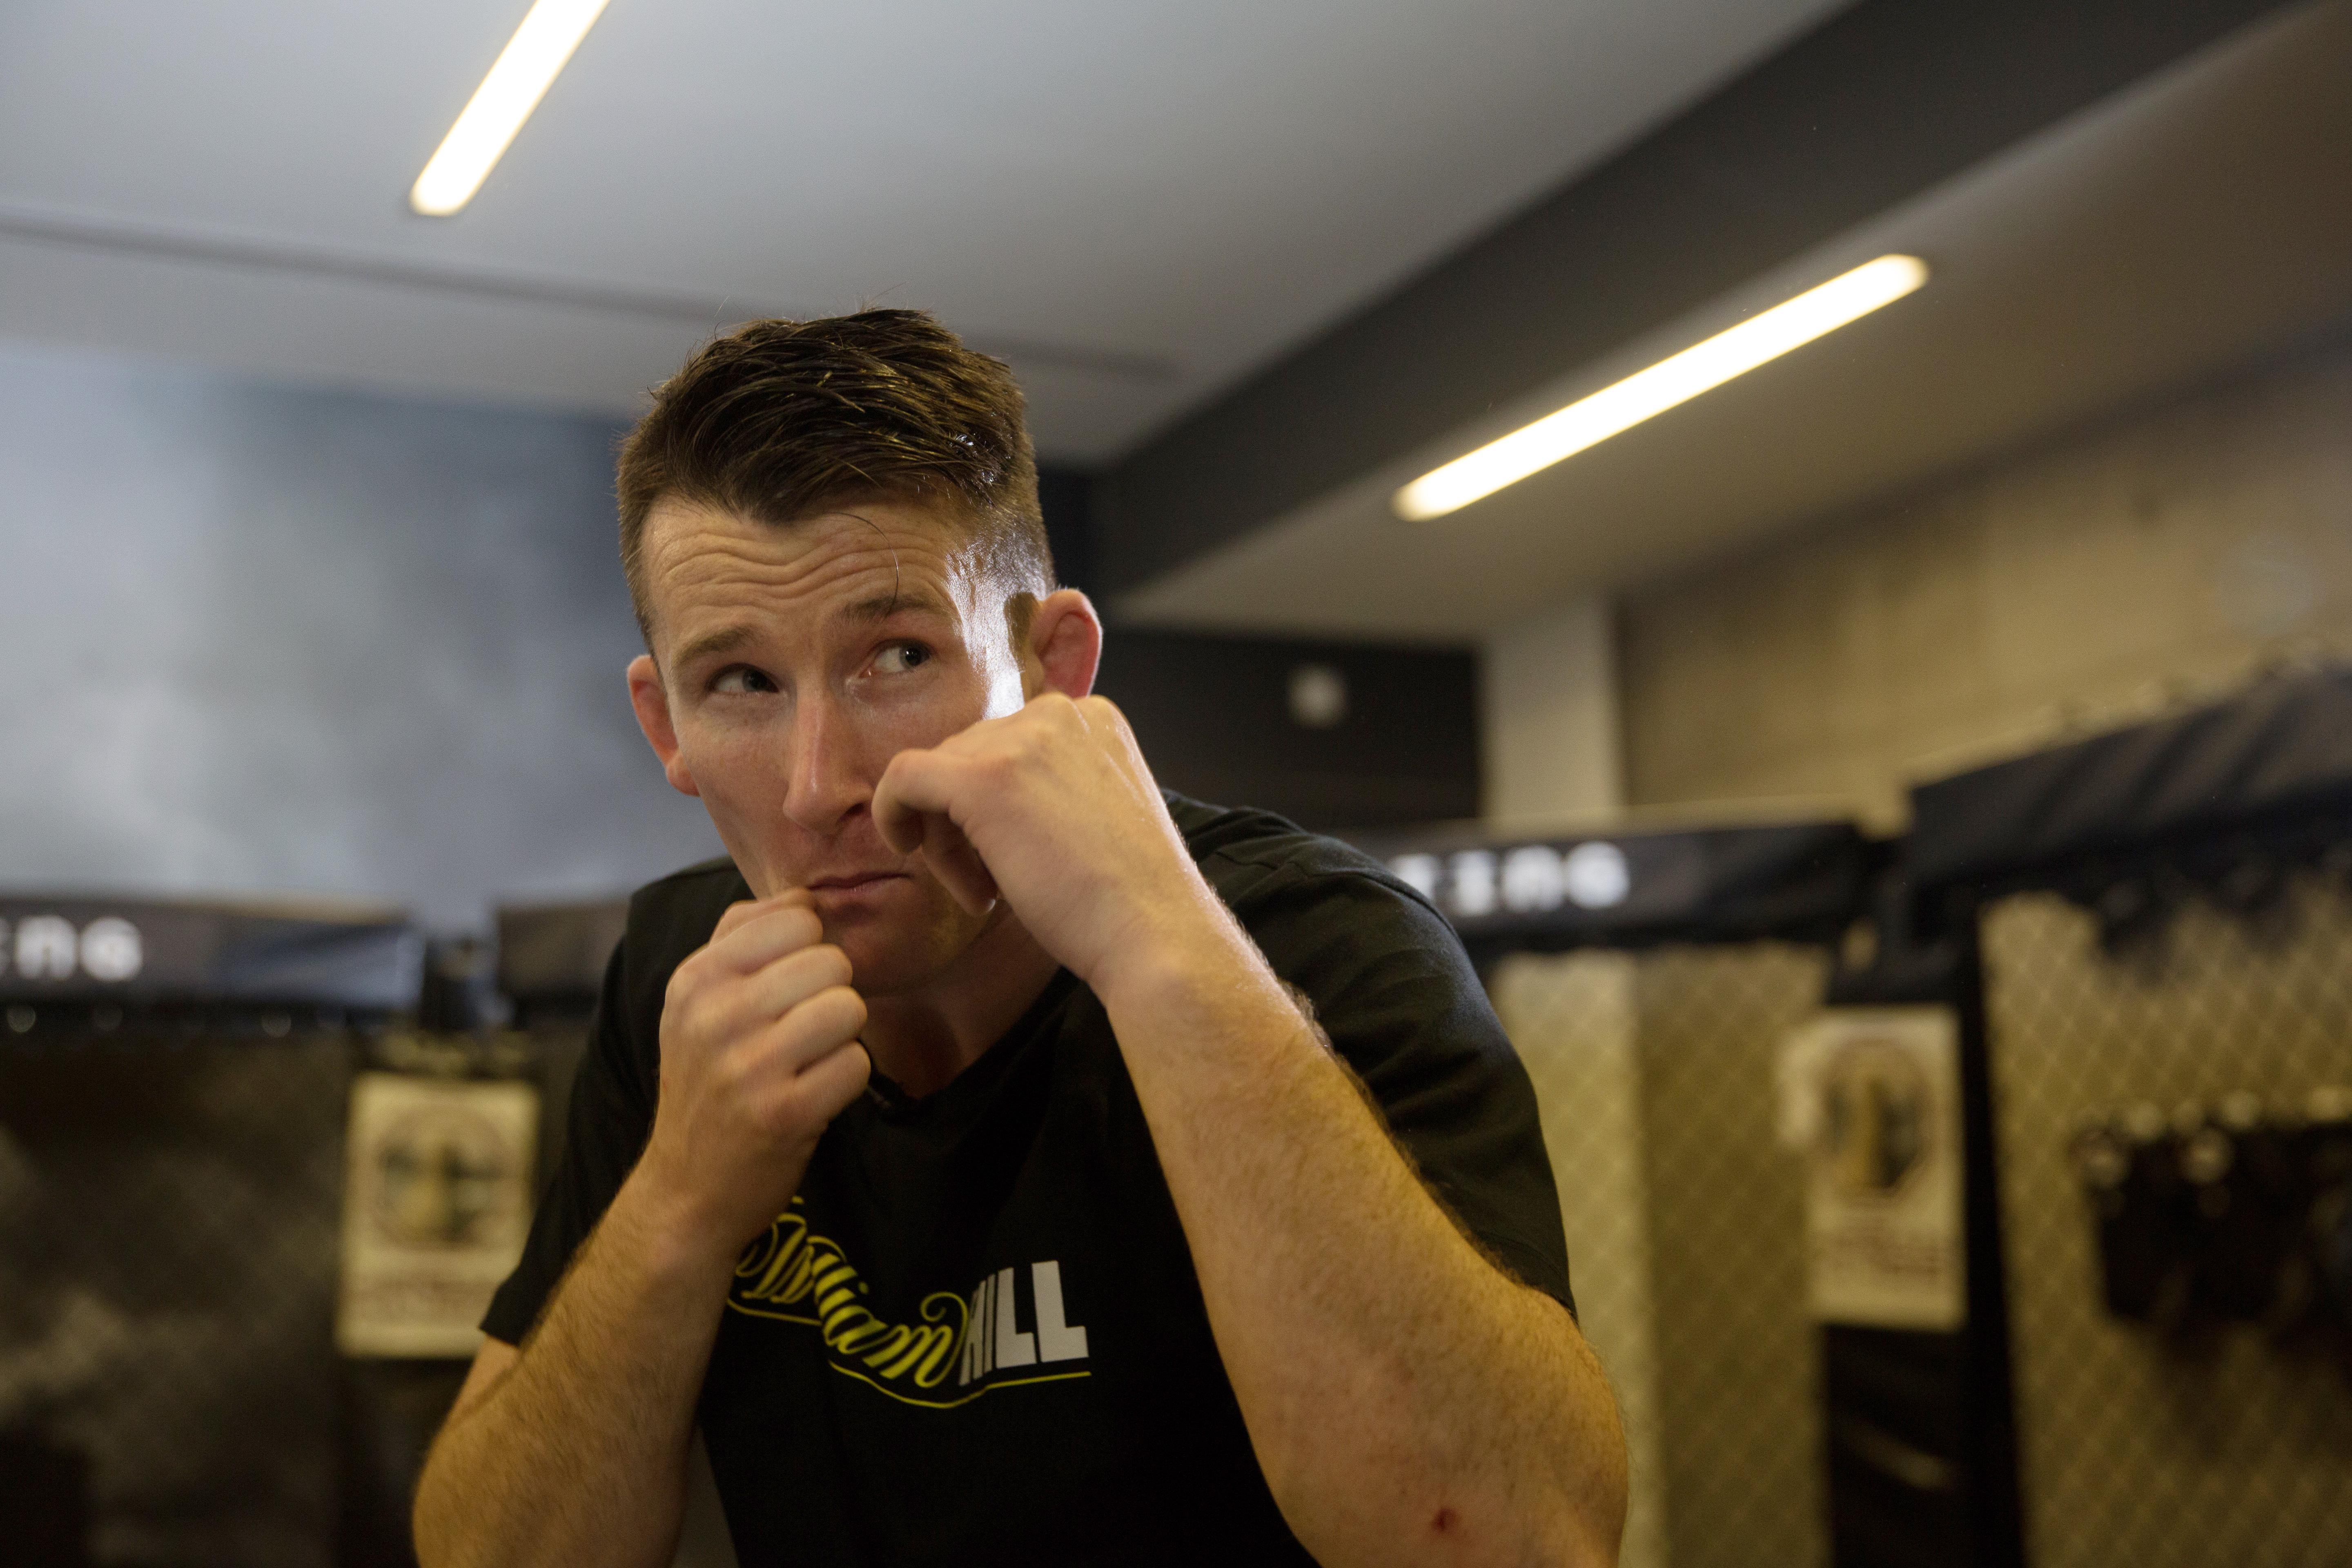 Roddy Owen is not sure if Conor McGregor will have two more fights in UFC - but knows he will always strive to give the fans 'what they want'